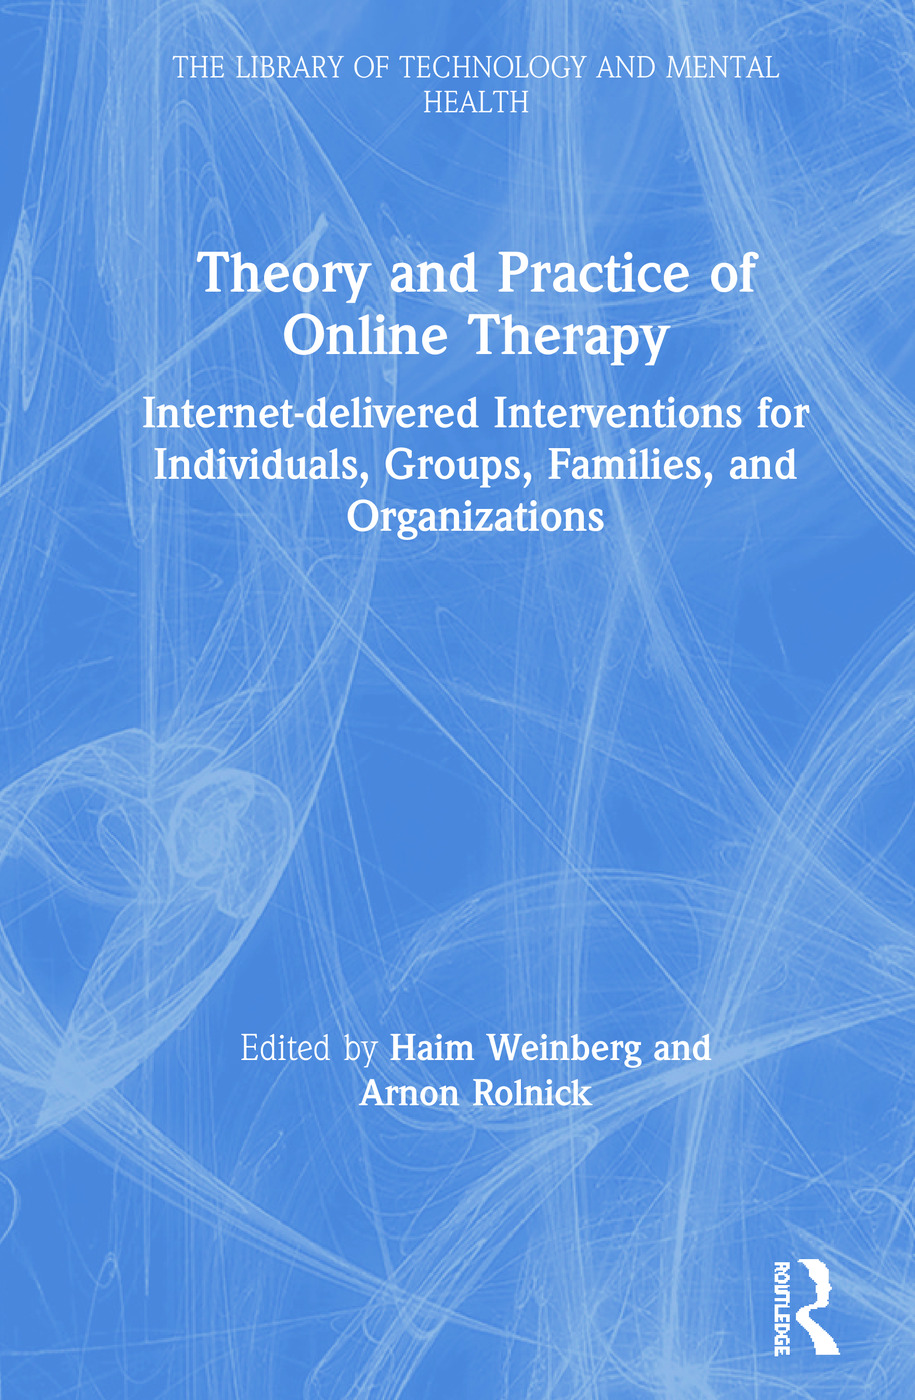 Theory and Practice of Online Therapy: Internet-delivered Interventions for Individuals, Groups, Families, and Organizations book cover